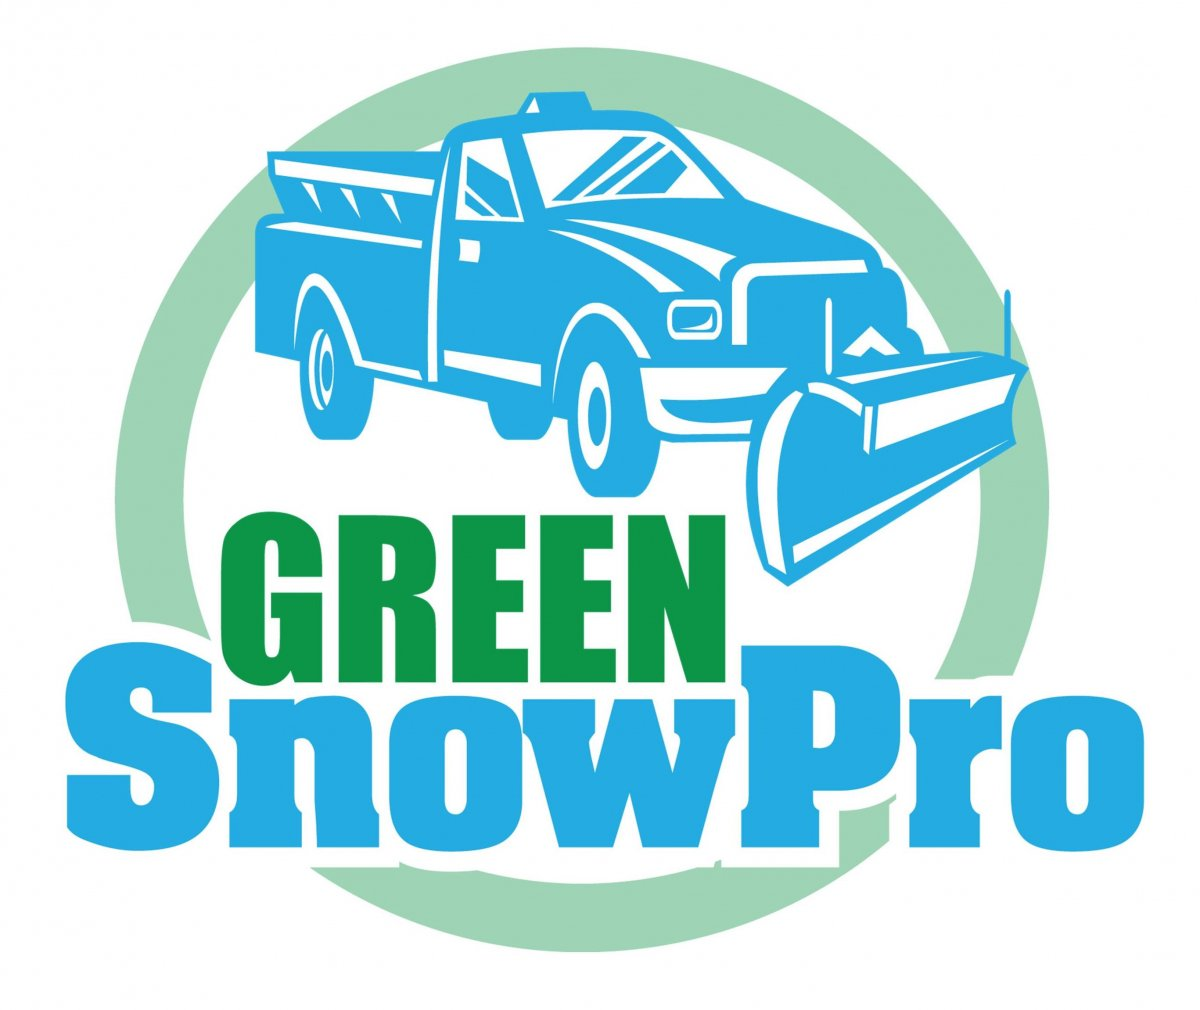 Nh Dept Env Services Certified Greensnowpro Snow Plow